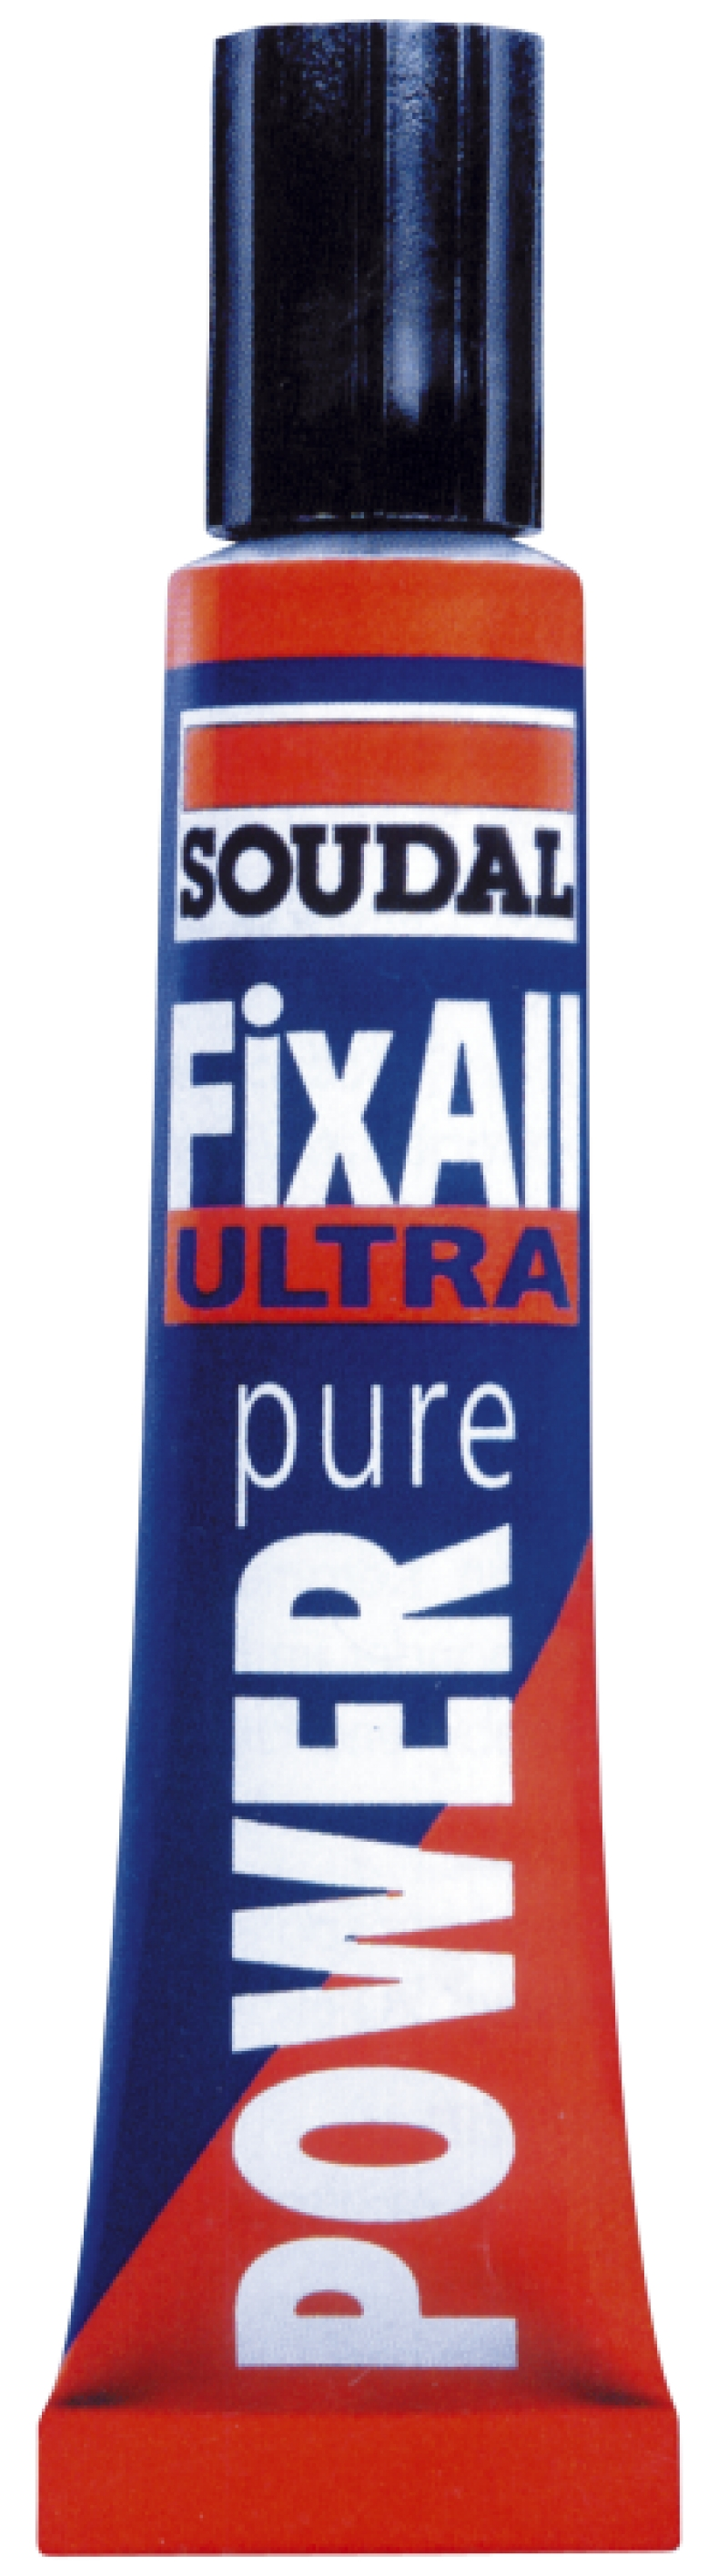 Fix ALL Ultra